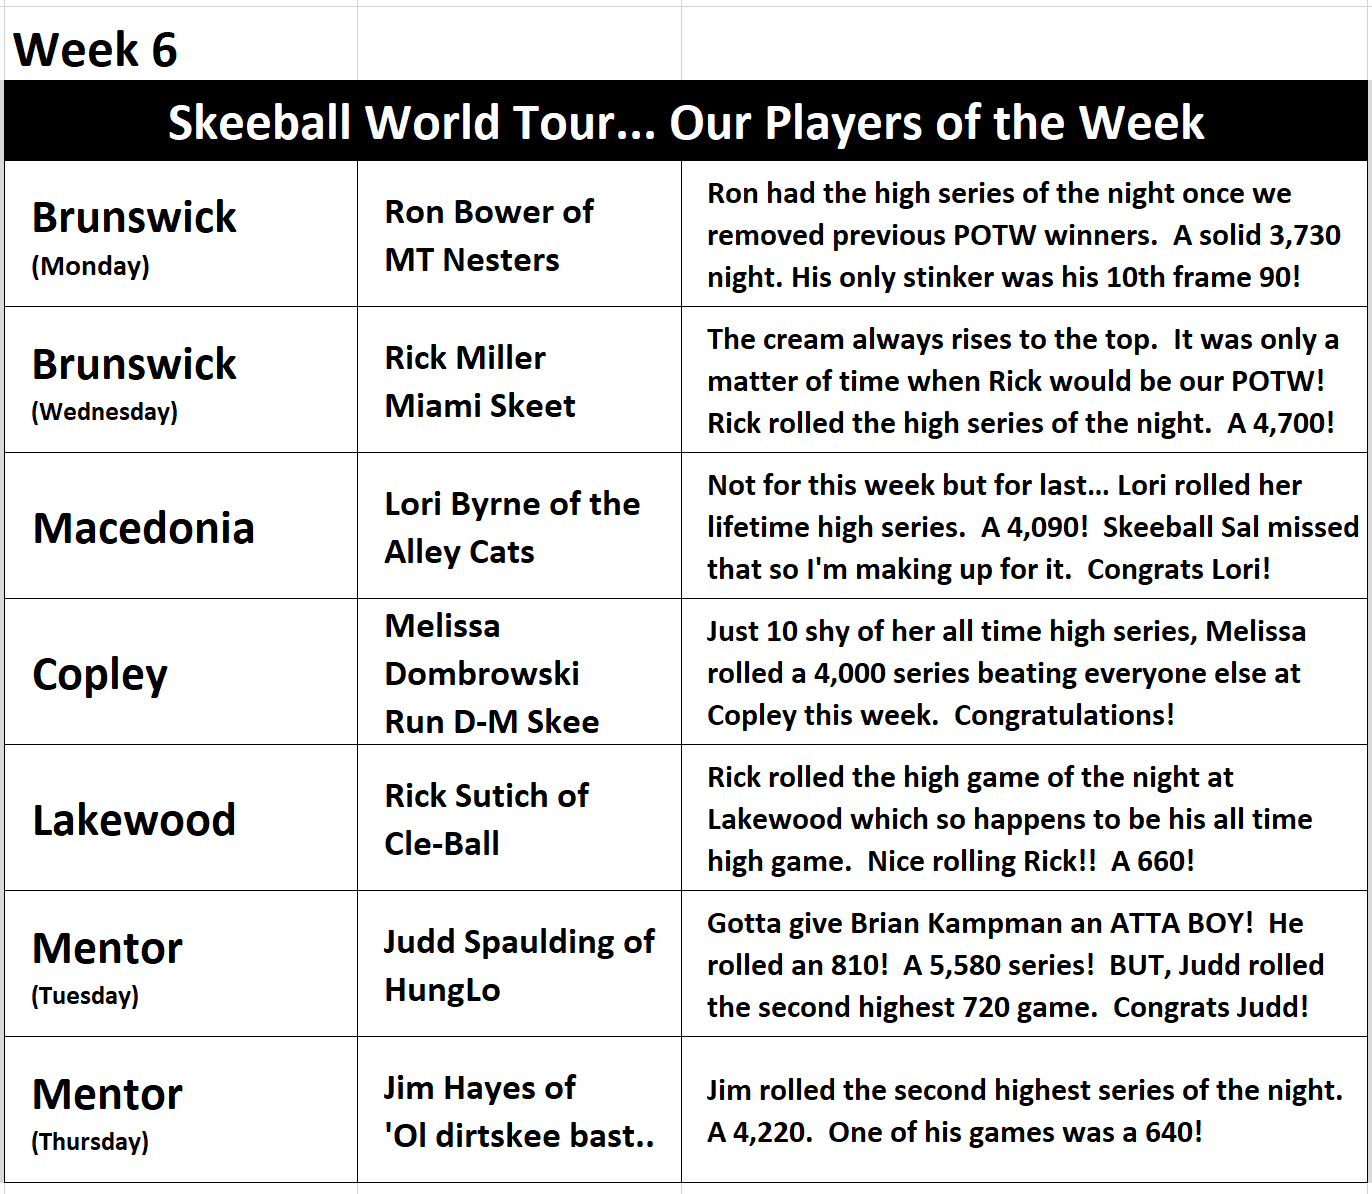 Week 6 Players of the Week